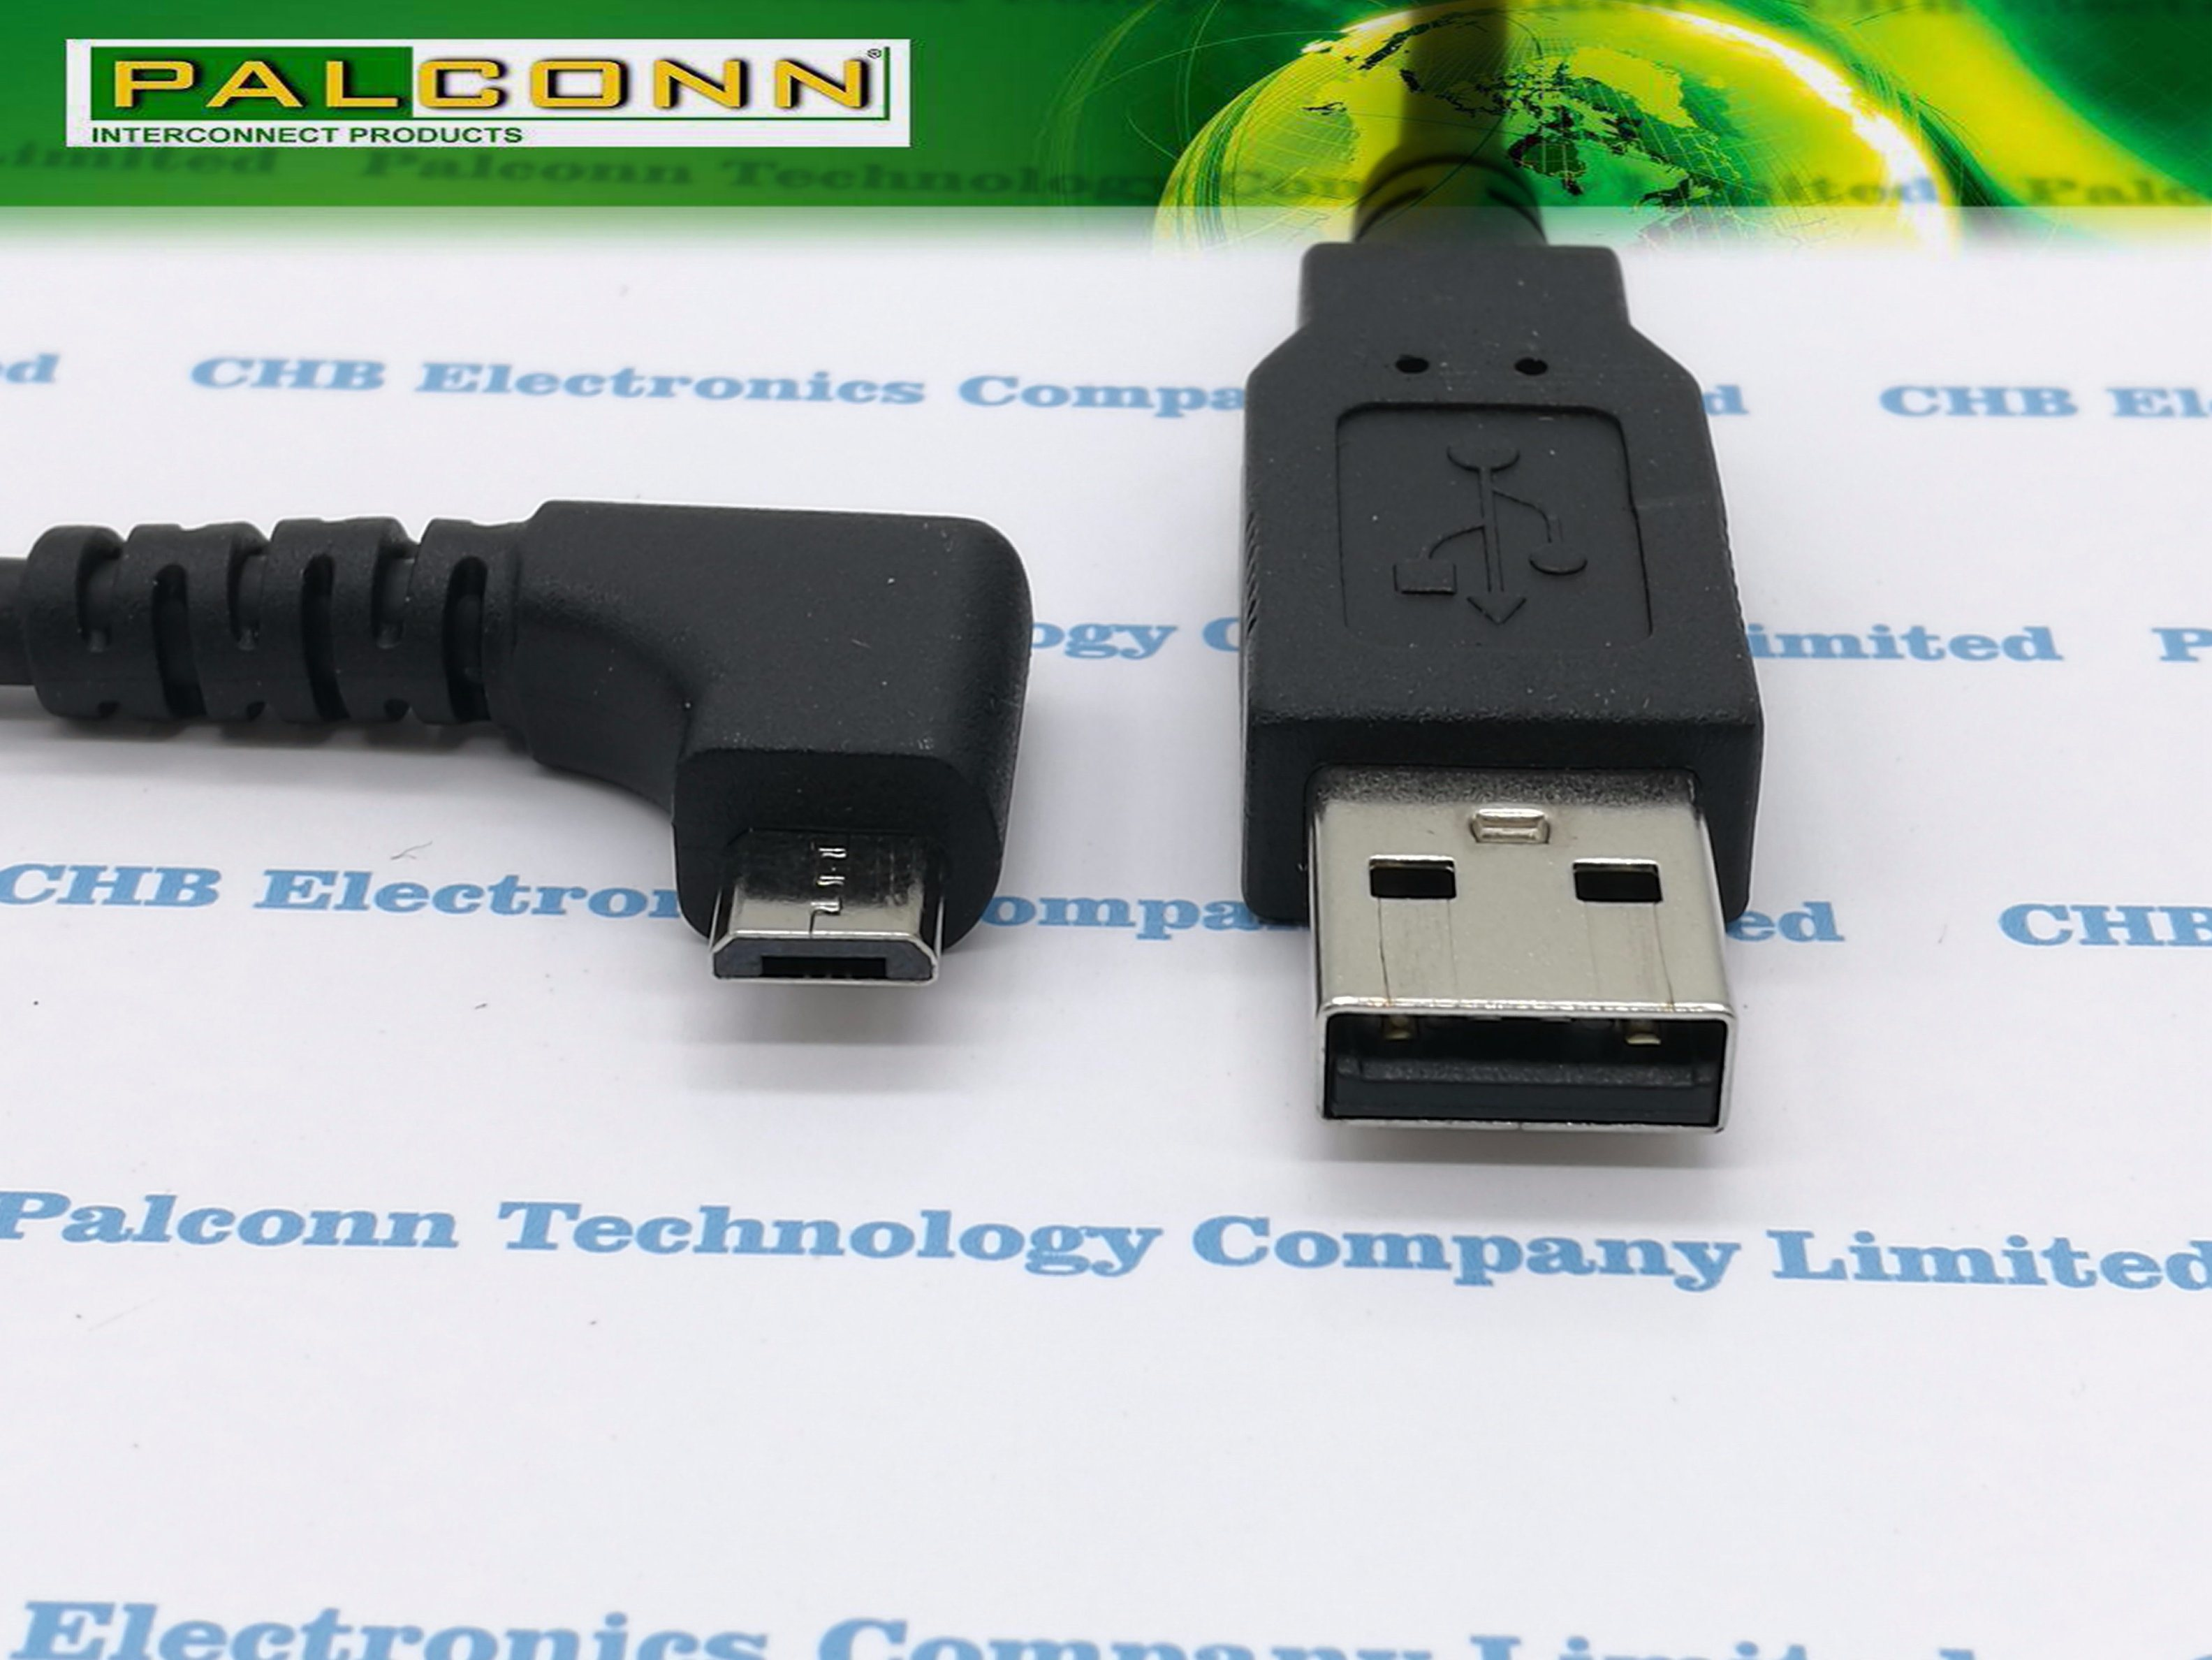 Beautiful Nook Usb Cable Wiring Diagram Photos - Electrical Diagram ...